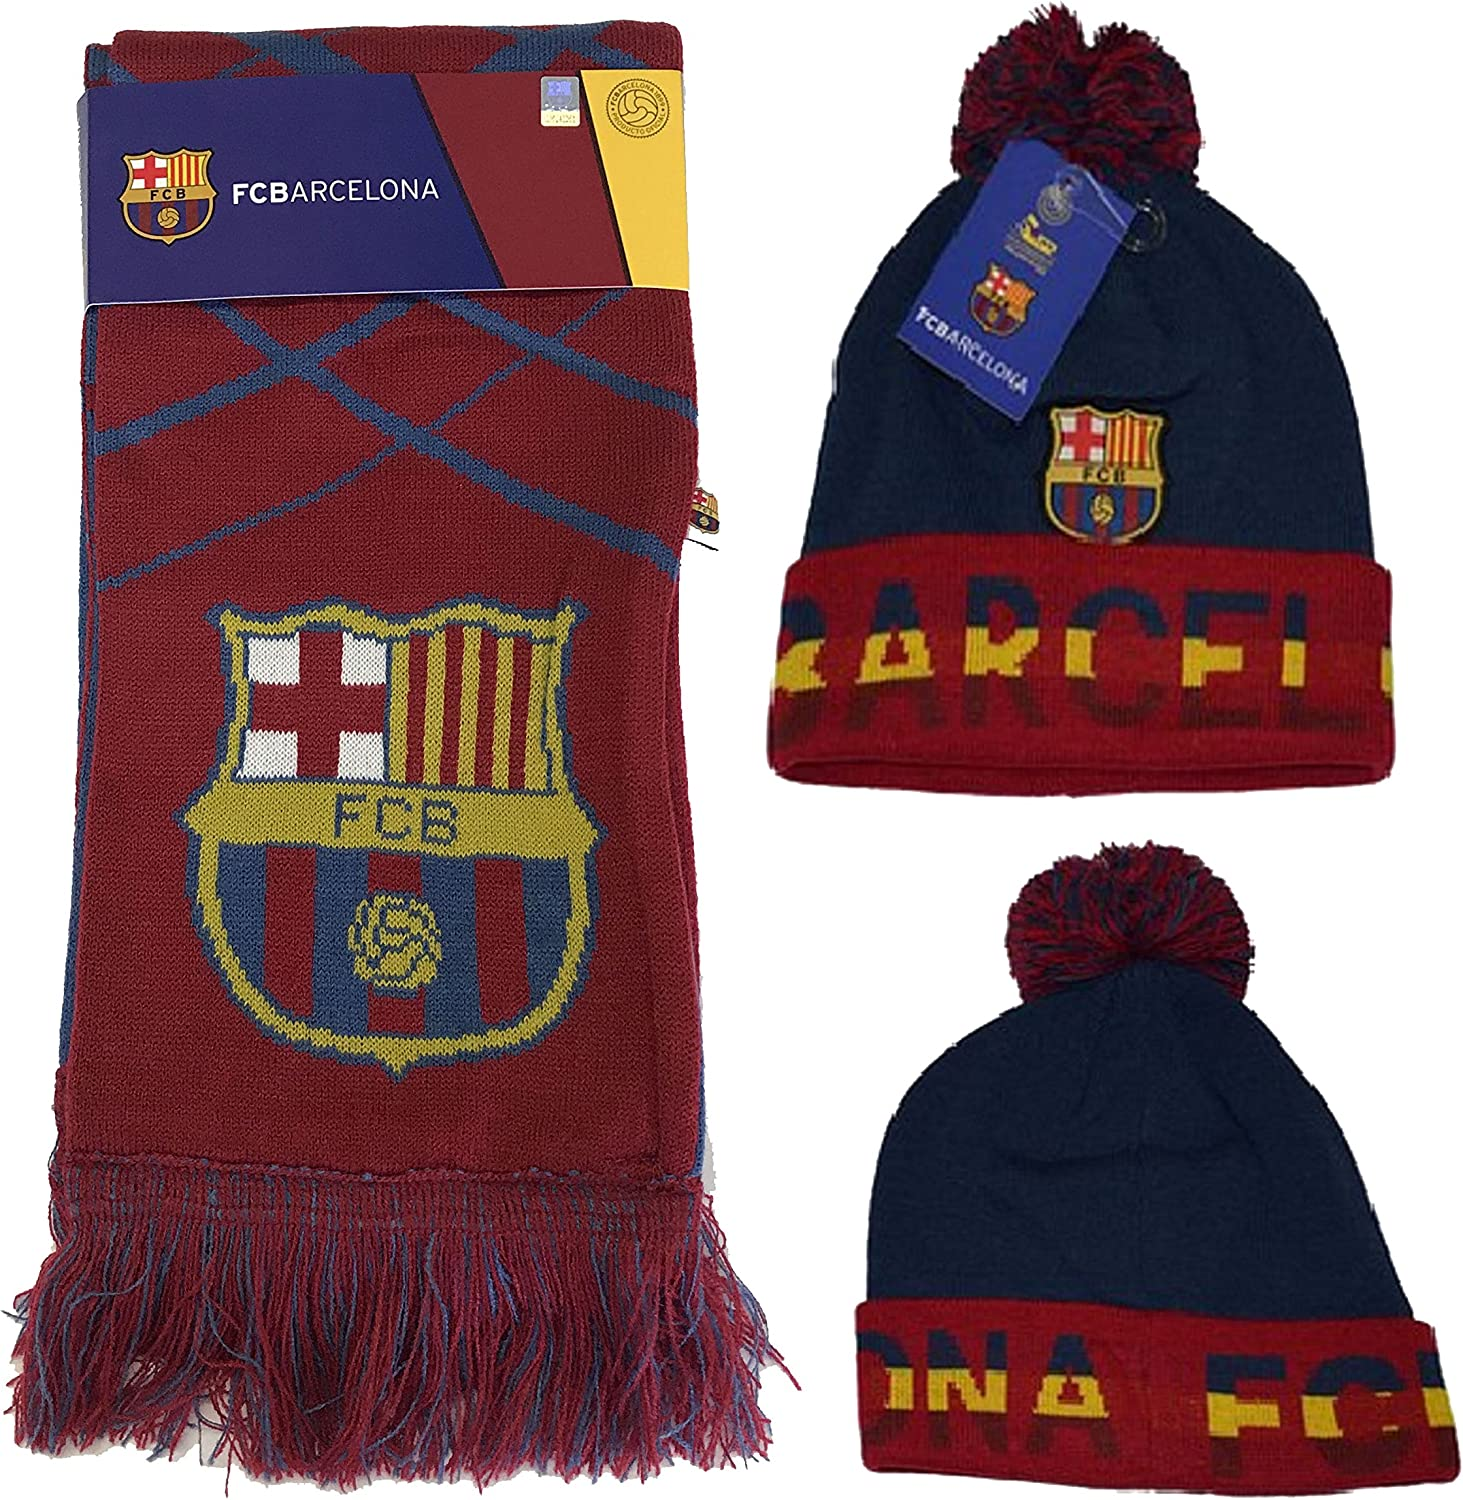 Fc Barcelona Set Beanie Pom Pom Skull Cap Hat and Scarf Reversible Season